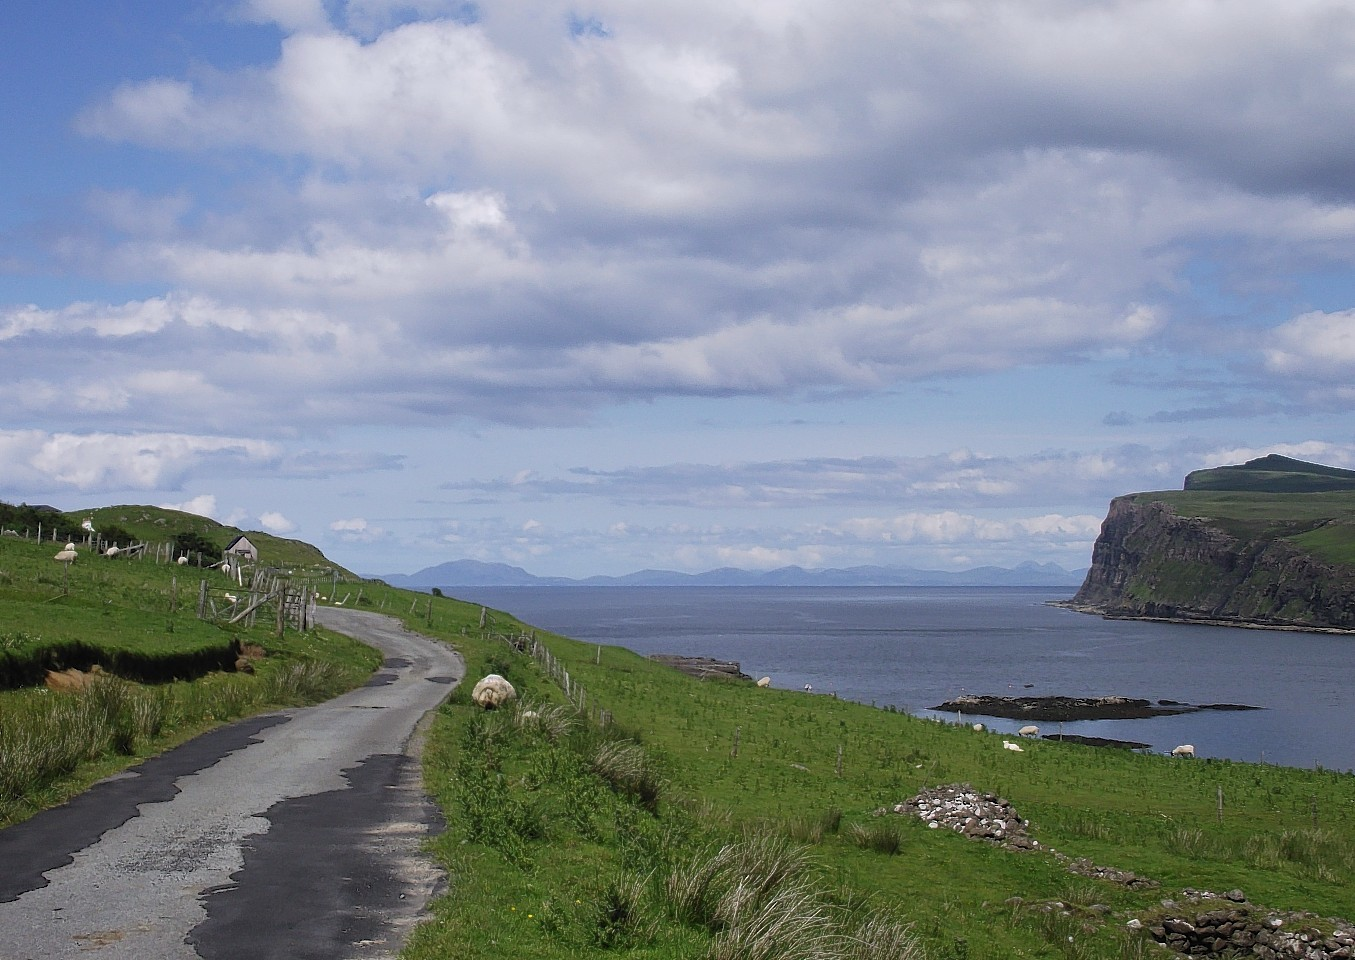 Loch Pooltiel, Skye, where a controversial fishfarm has been approved by the Scottish Government.